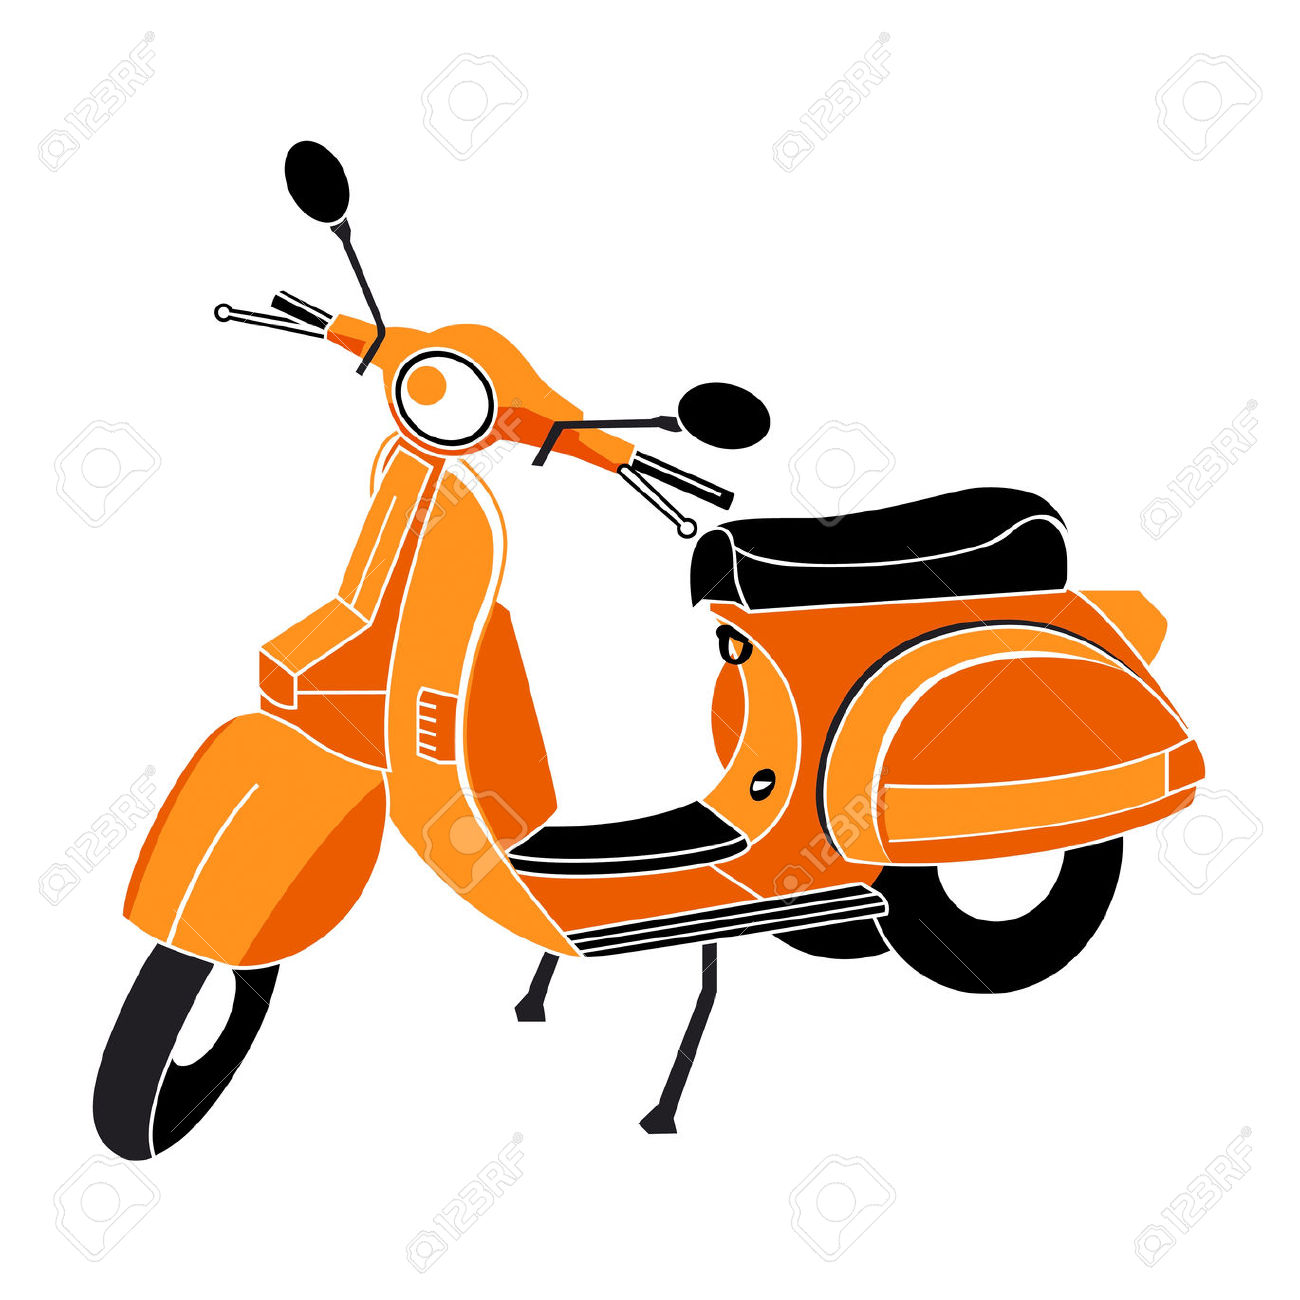 Mod scooter clipart.